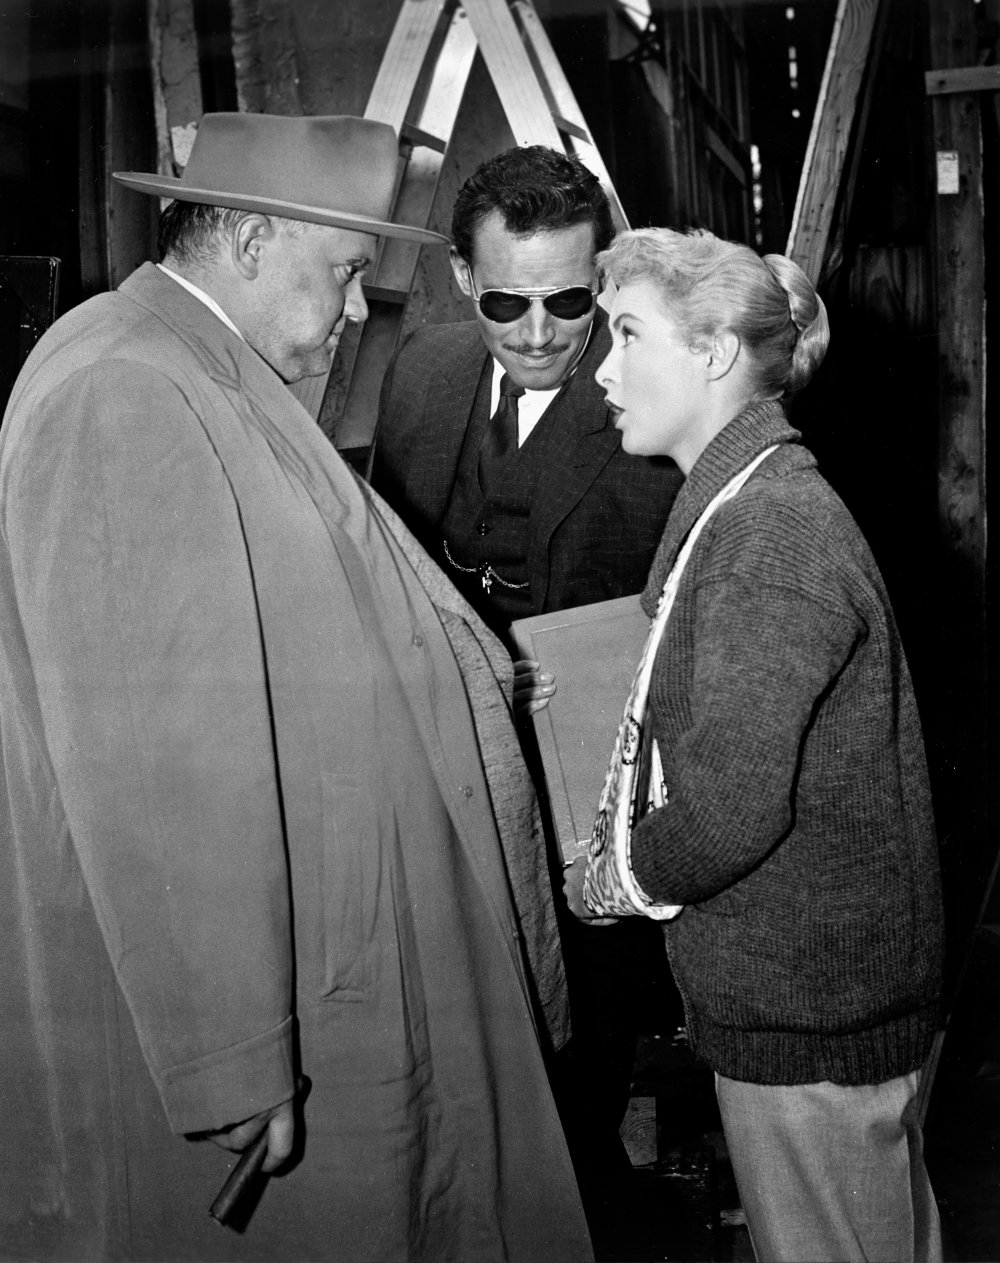 Janet Leigh, with her arm in a sling, talks with Welles and Heston. Leigh broke her arm a week before rehearsals started for the film and had to conceal the cast throughout much of filming